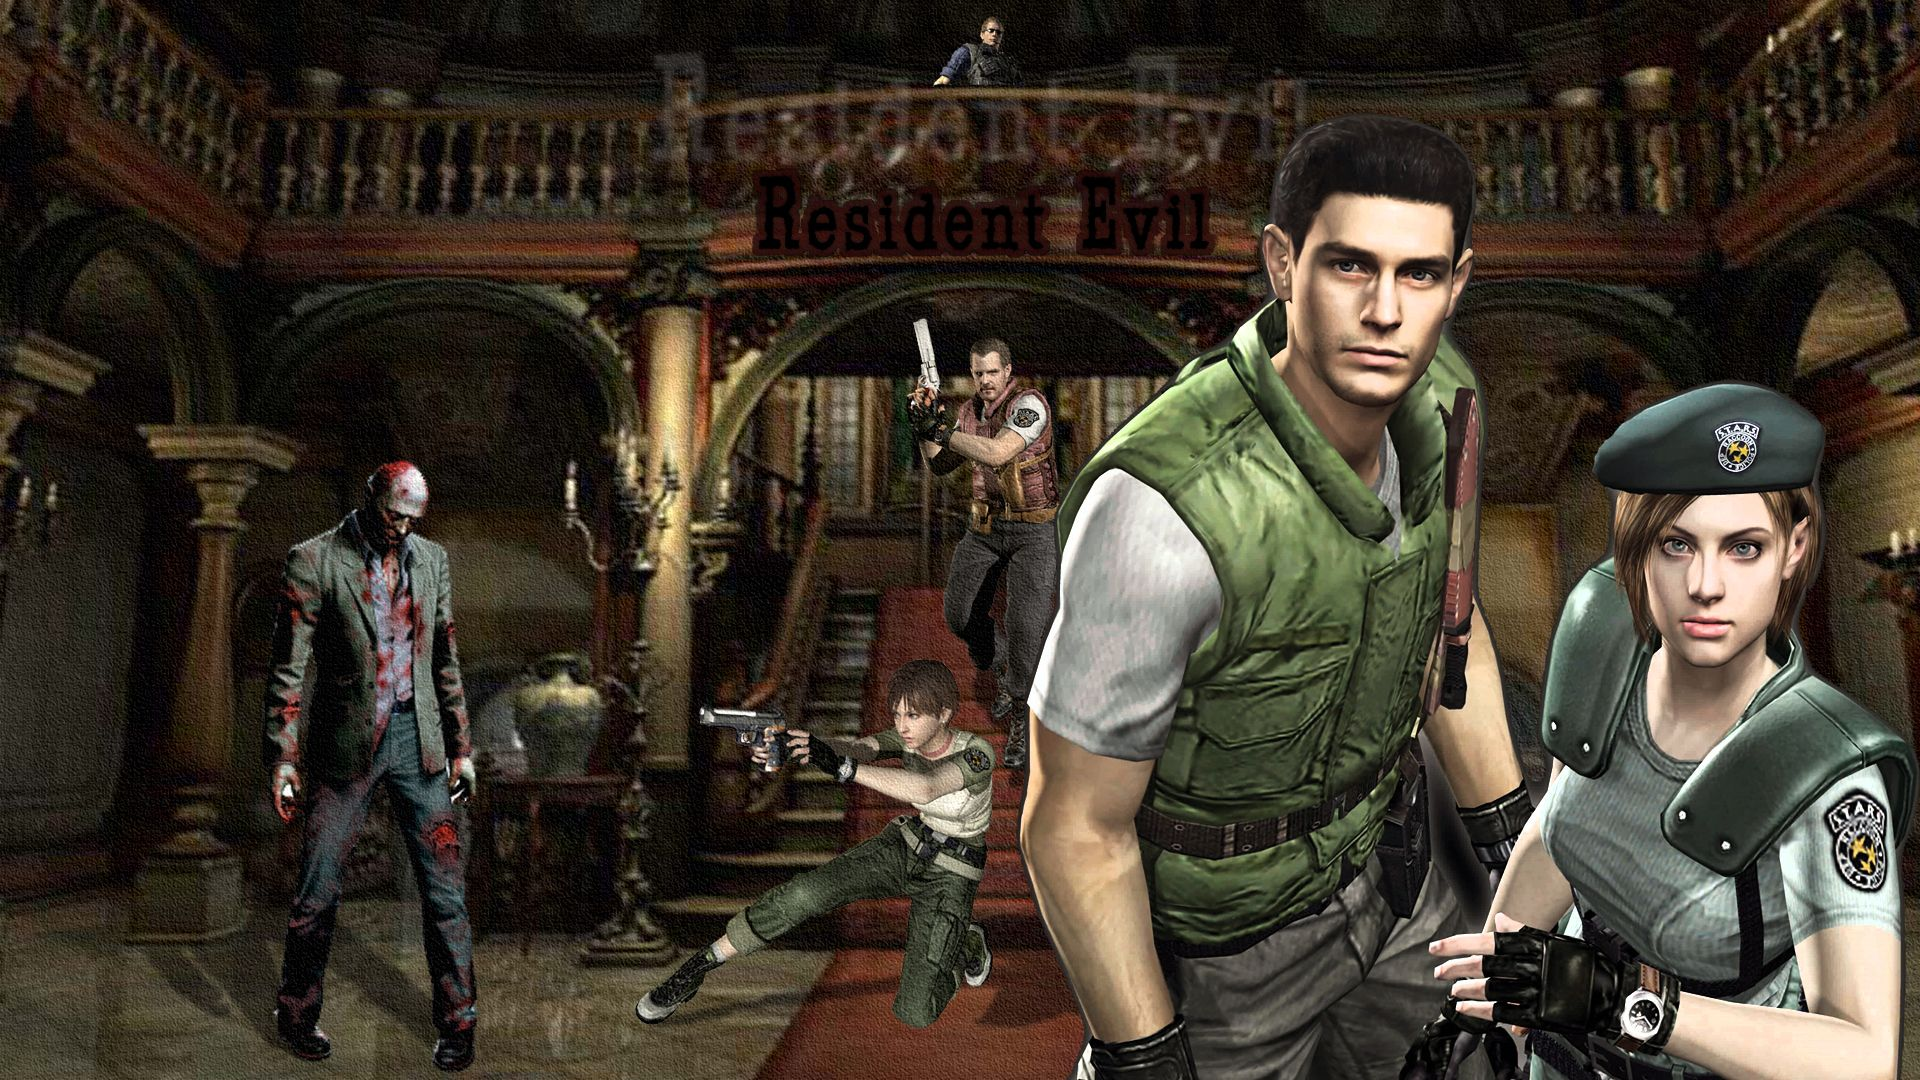 Resident Evil 1 Wallpapers Top Free Resident Evil 1 Backgrounds